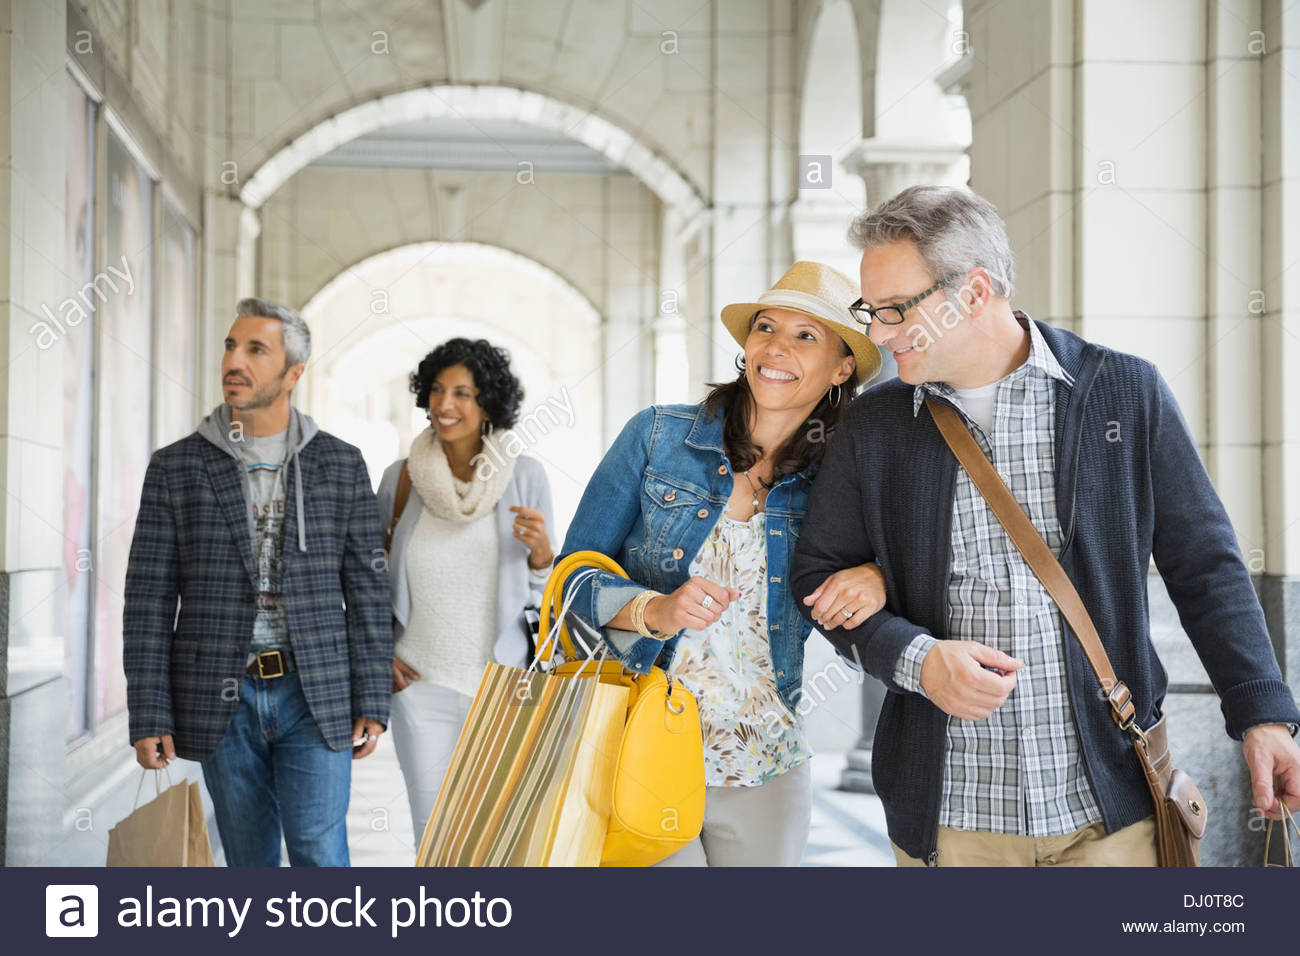 Couples spending time shopping together - Stock Image